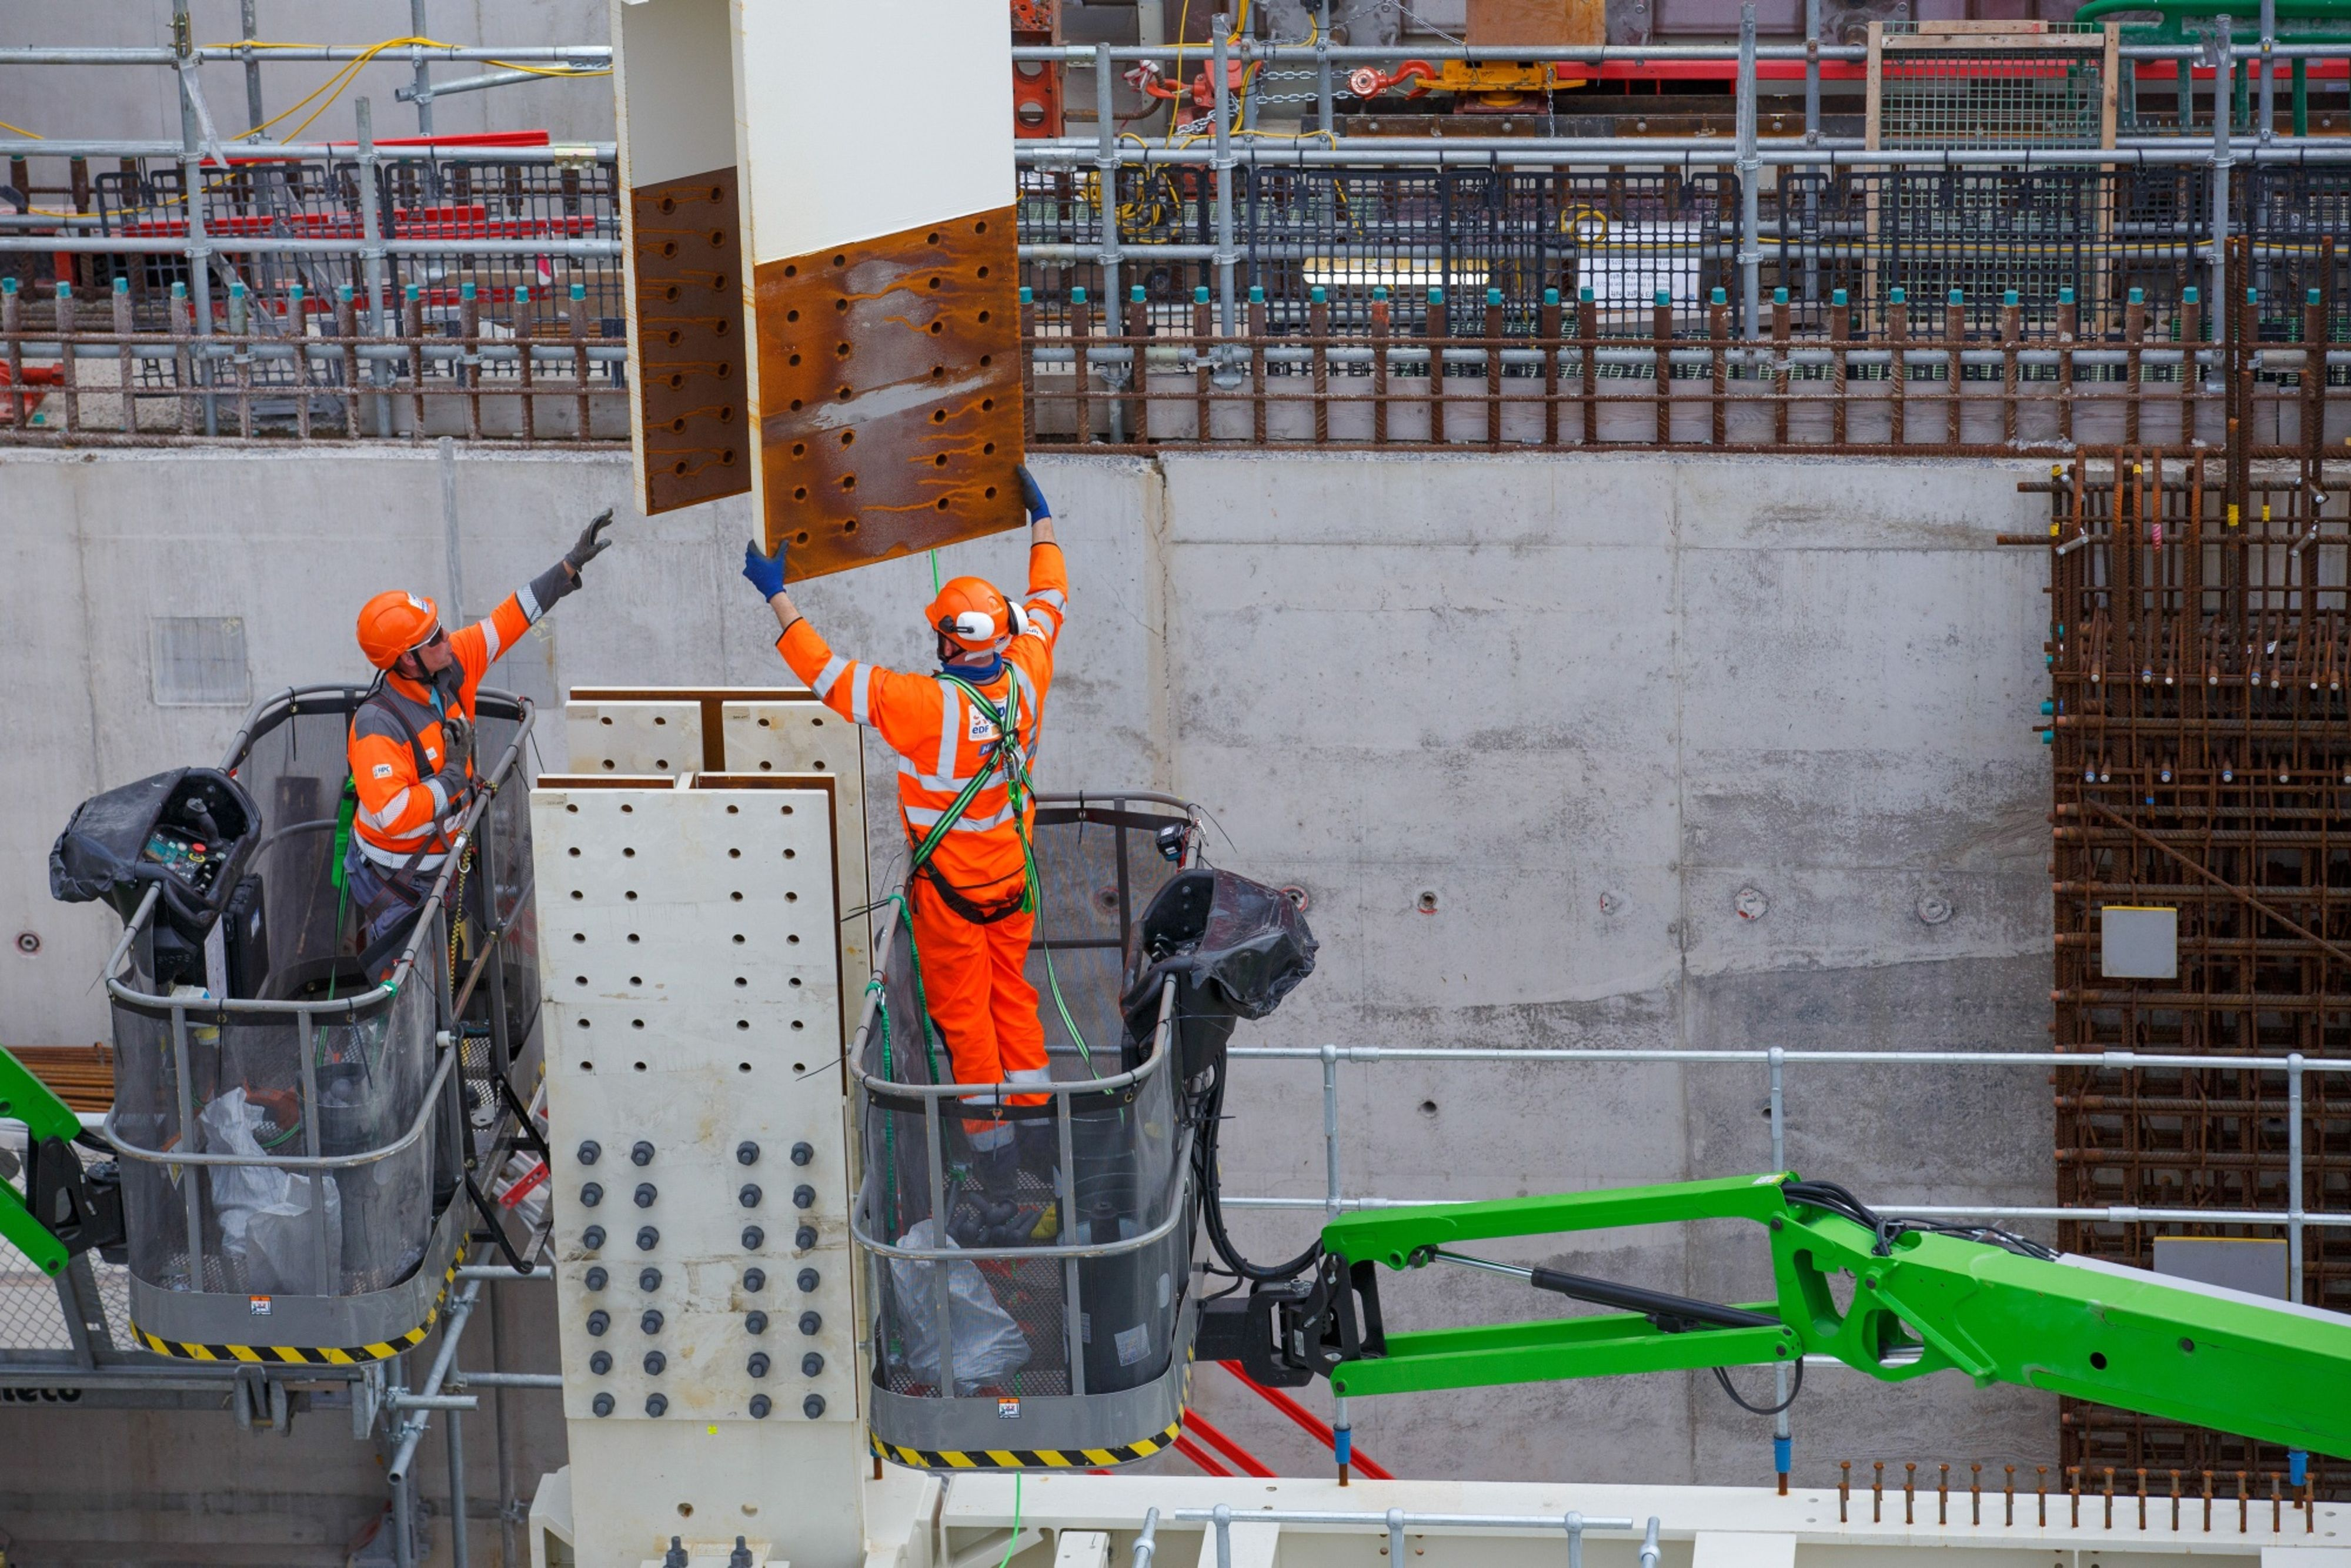 Contractors move a steel joist into position at Hinkley Point C nuclear power station construction site, near Bridgwater U.K., on Thursday, Sept. 23, 2021.